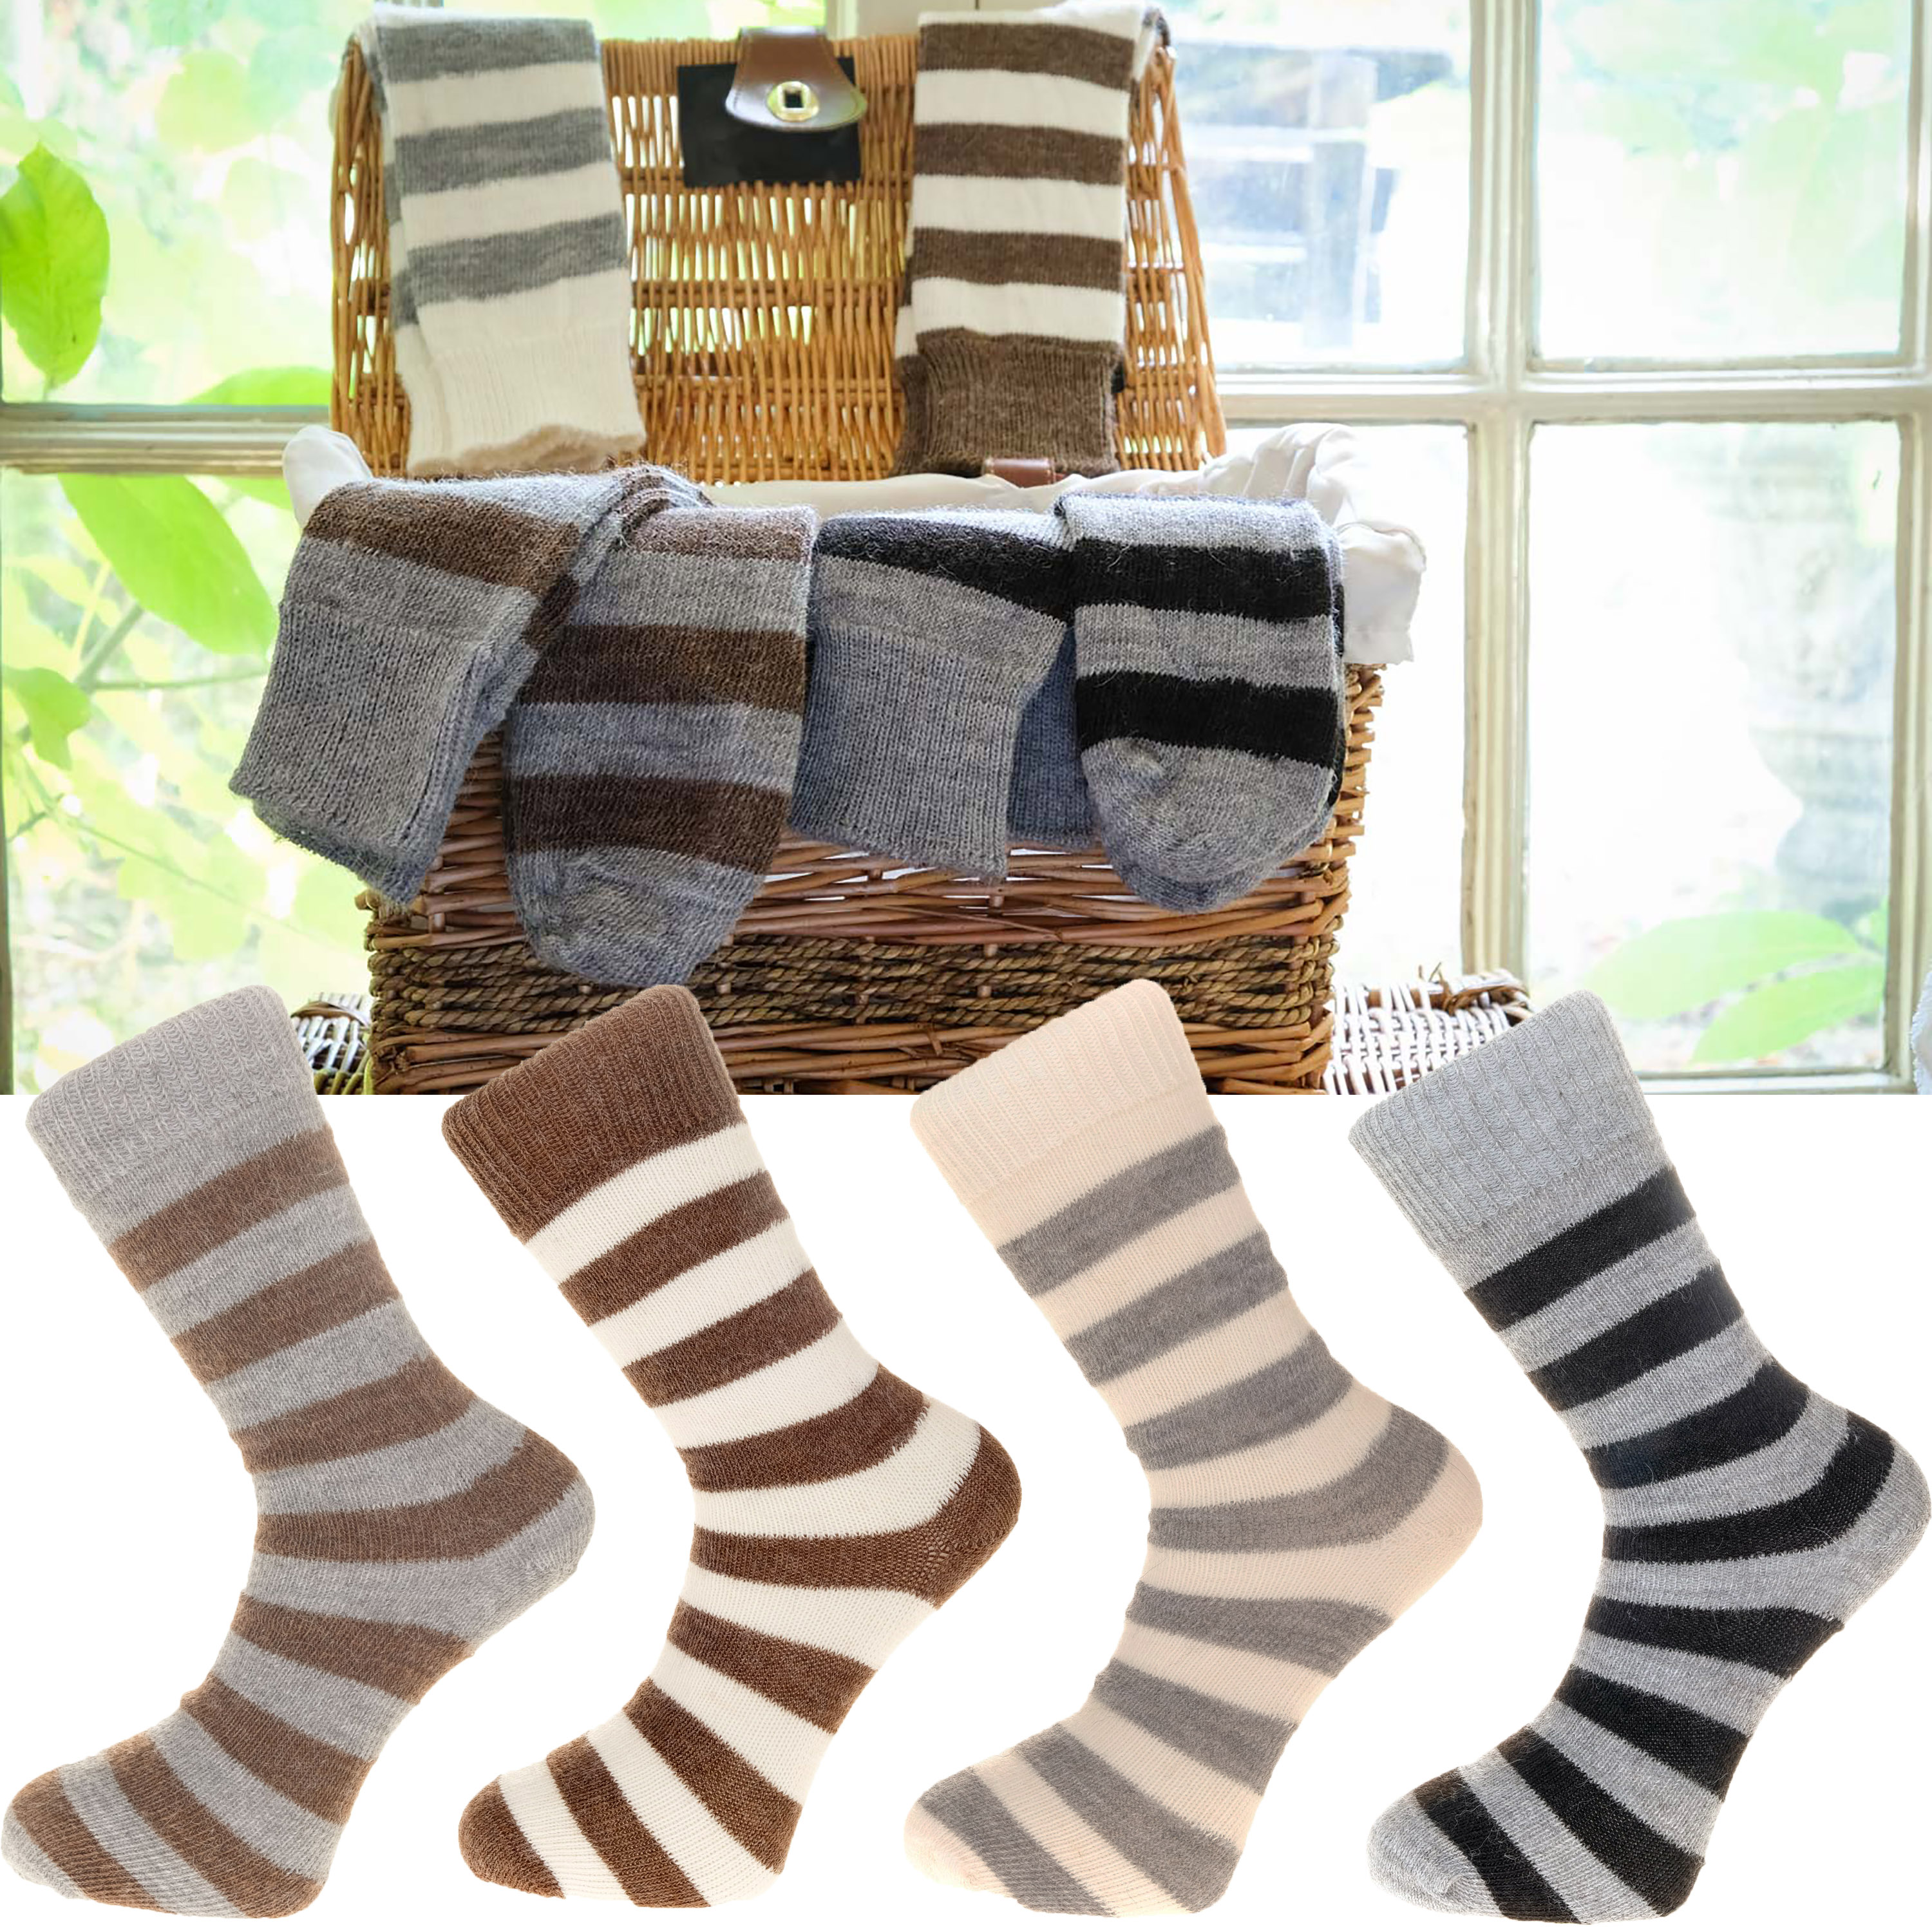 The Alpaca Every Day Socks Stripes